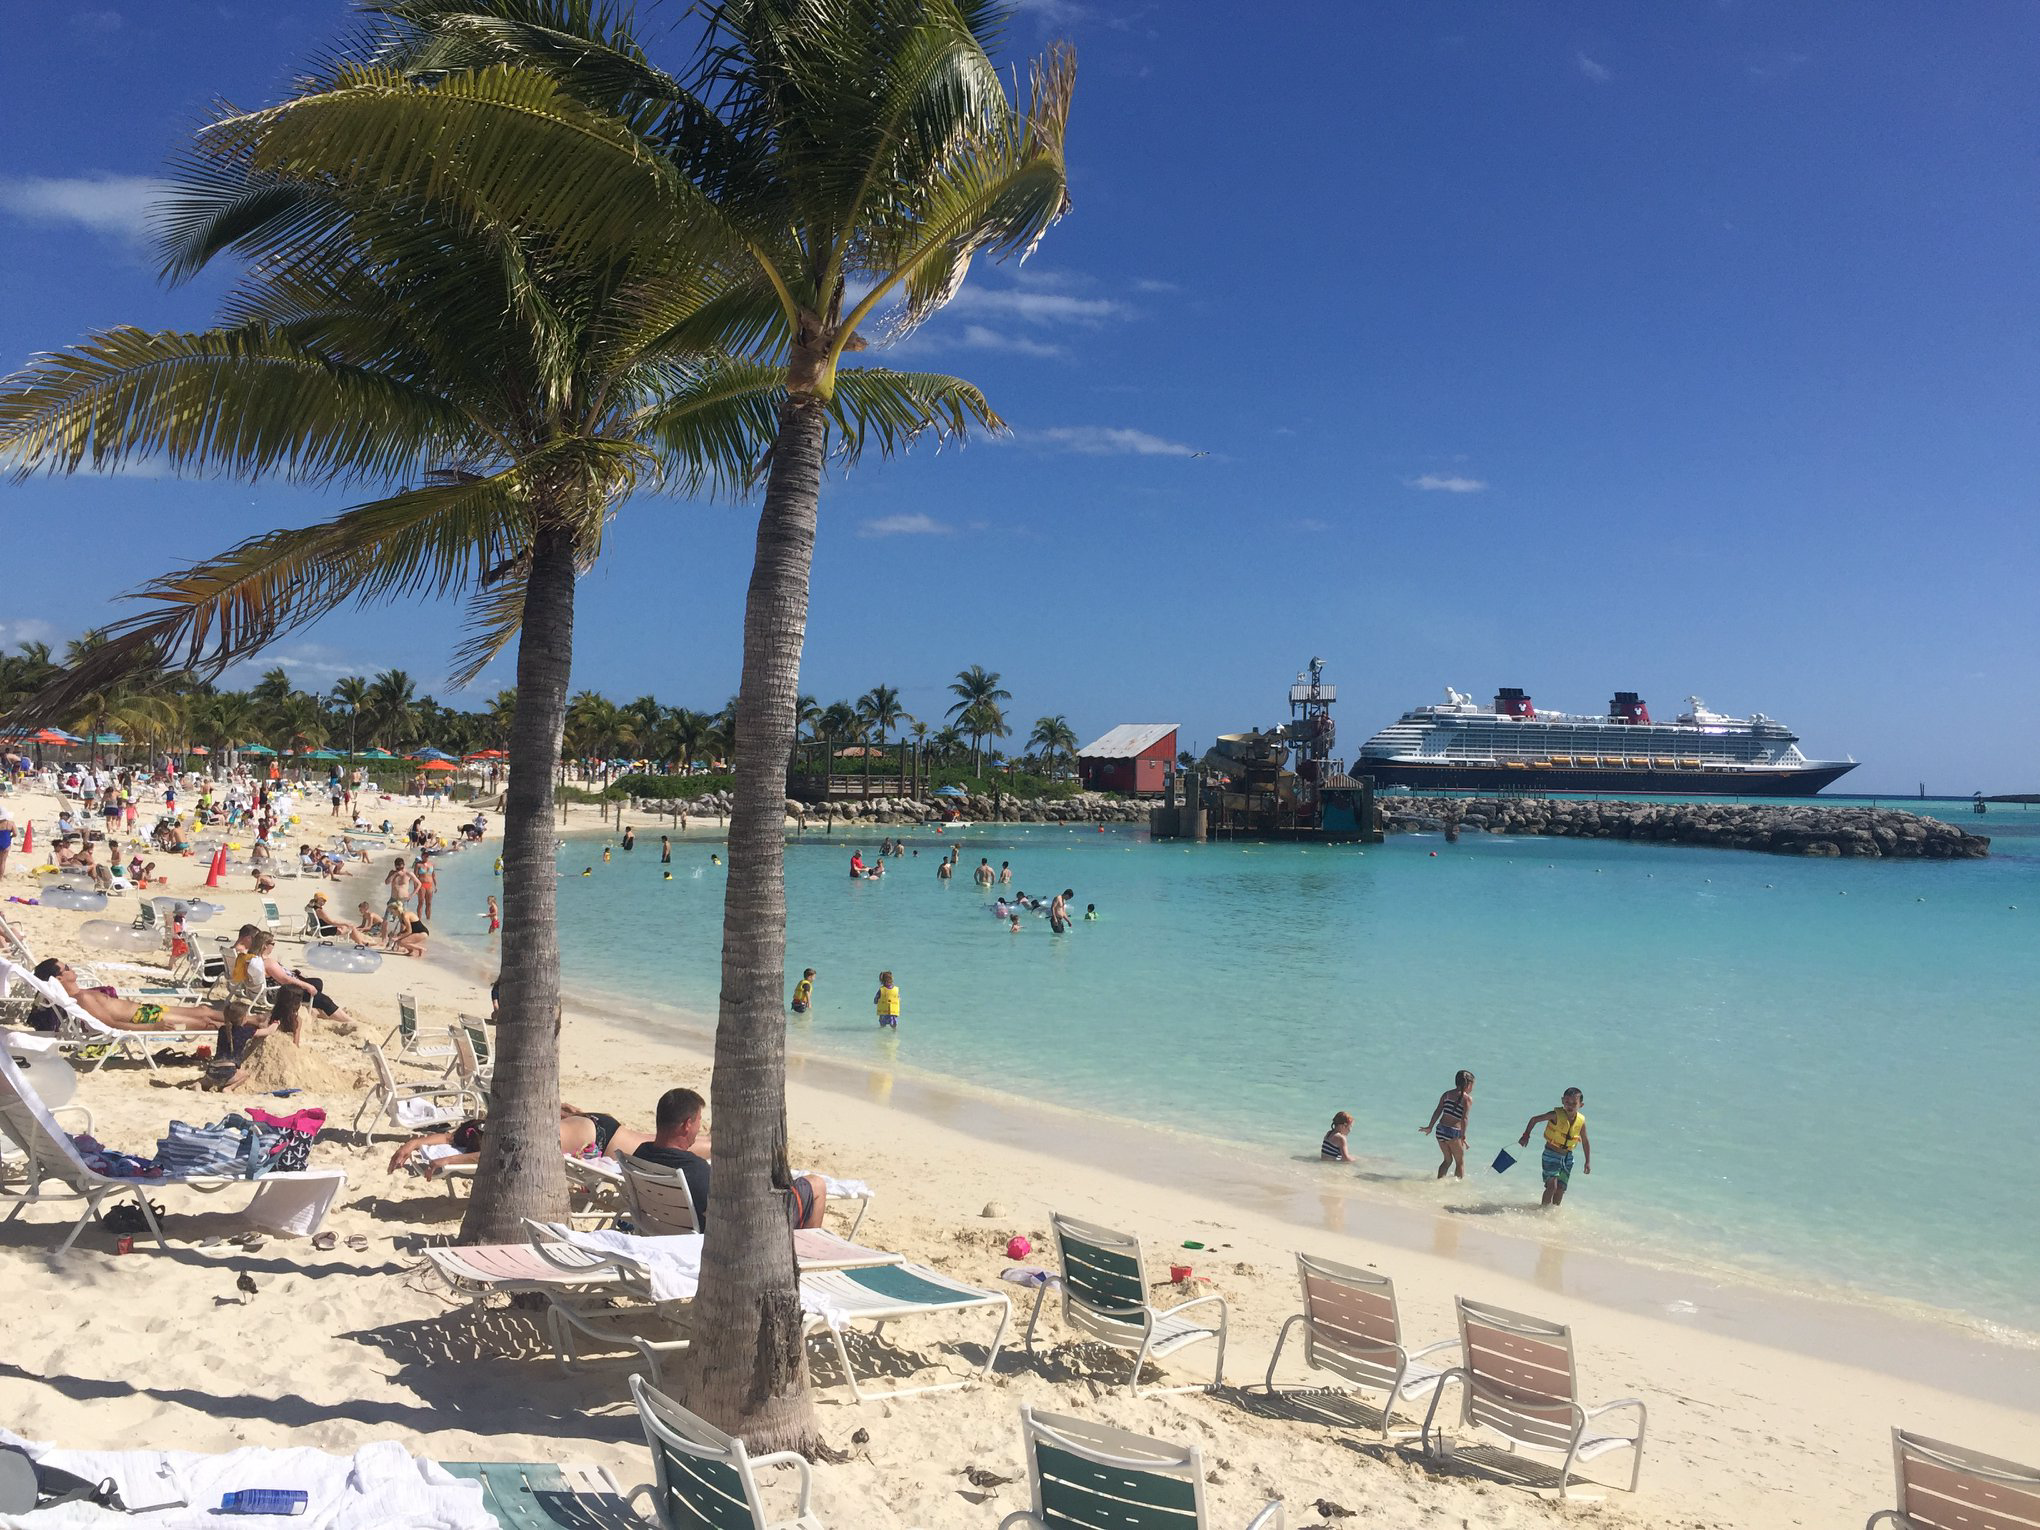 Who wouldn't want to have their toes in the sand at Disney's own private island, Castaway Cay?